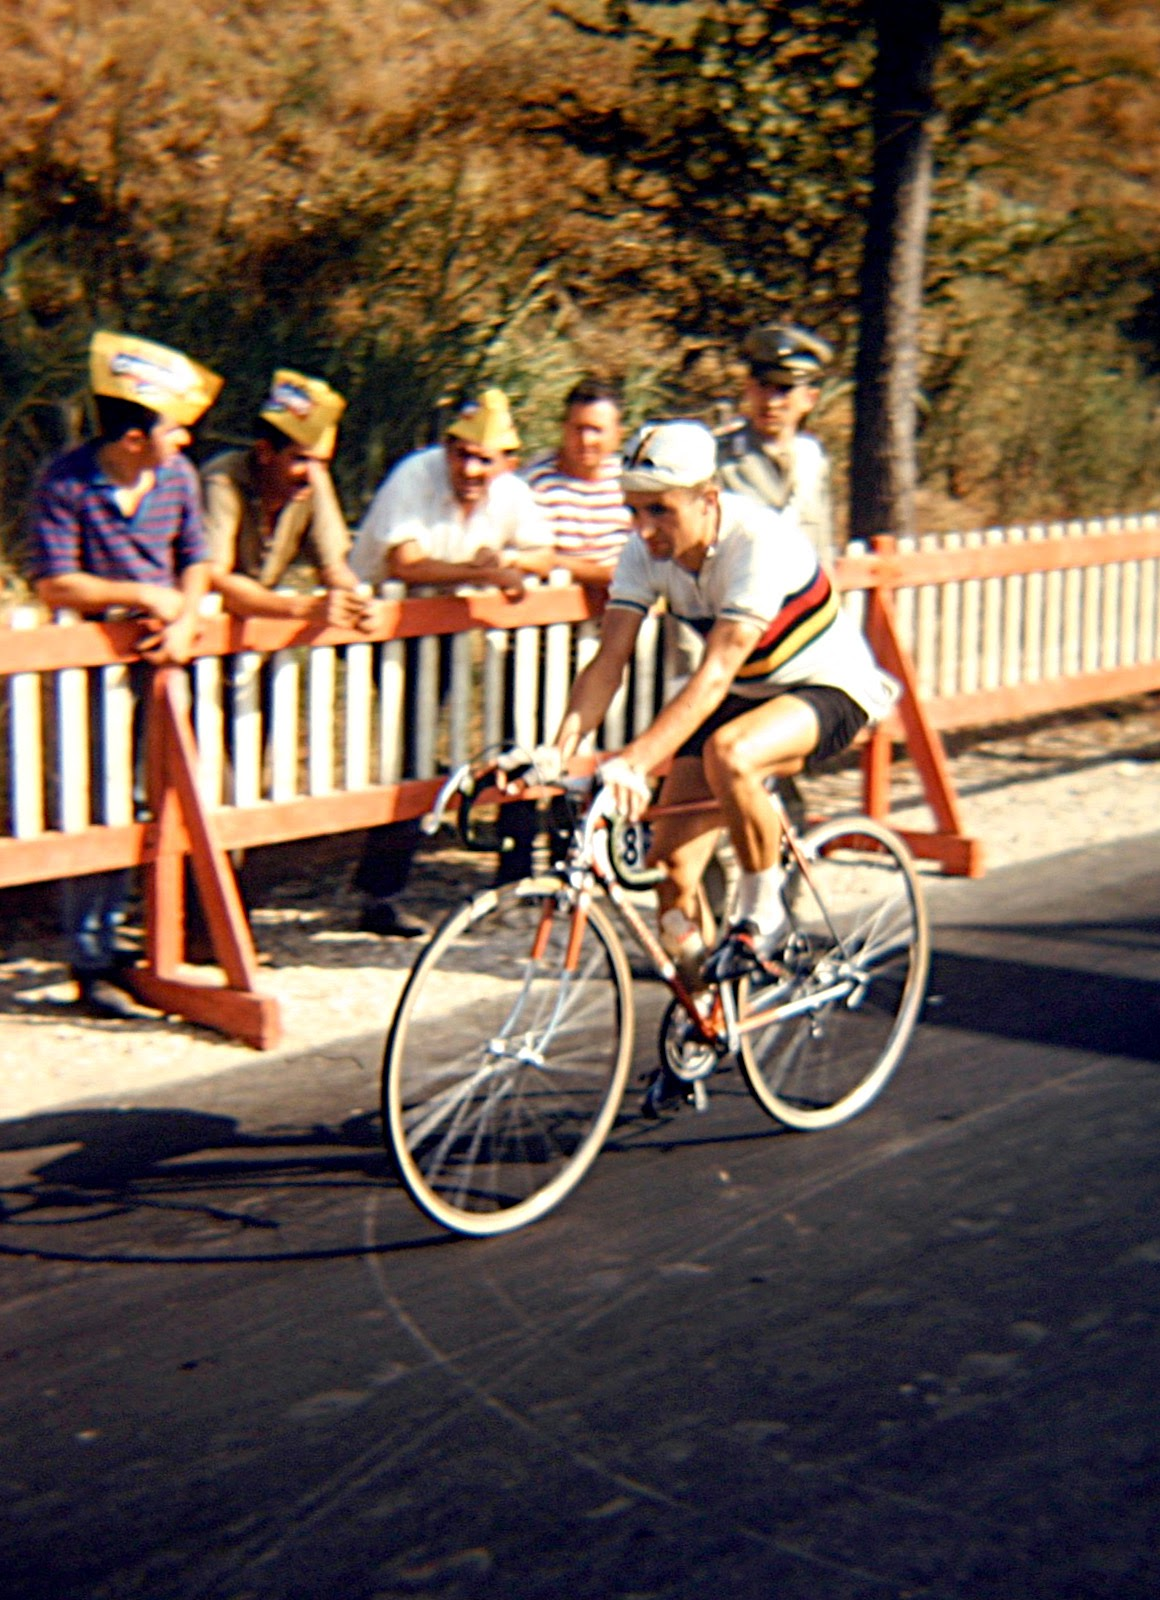 World Amateur Champion, Gustav Schur of East Germany warming up for the road race. (Photo: © Sean B. Fox)